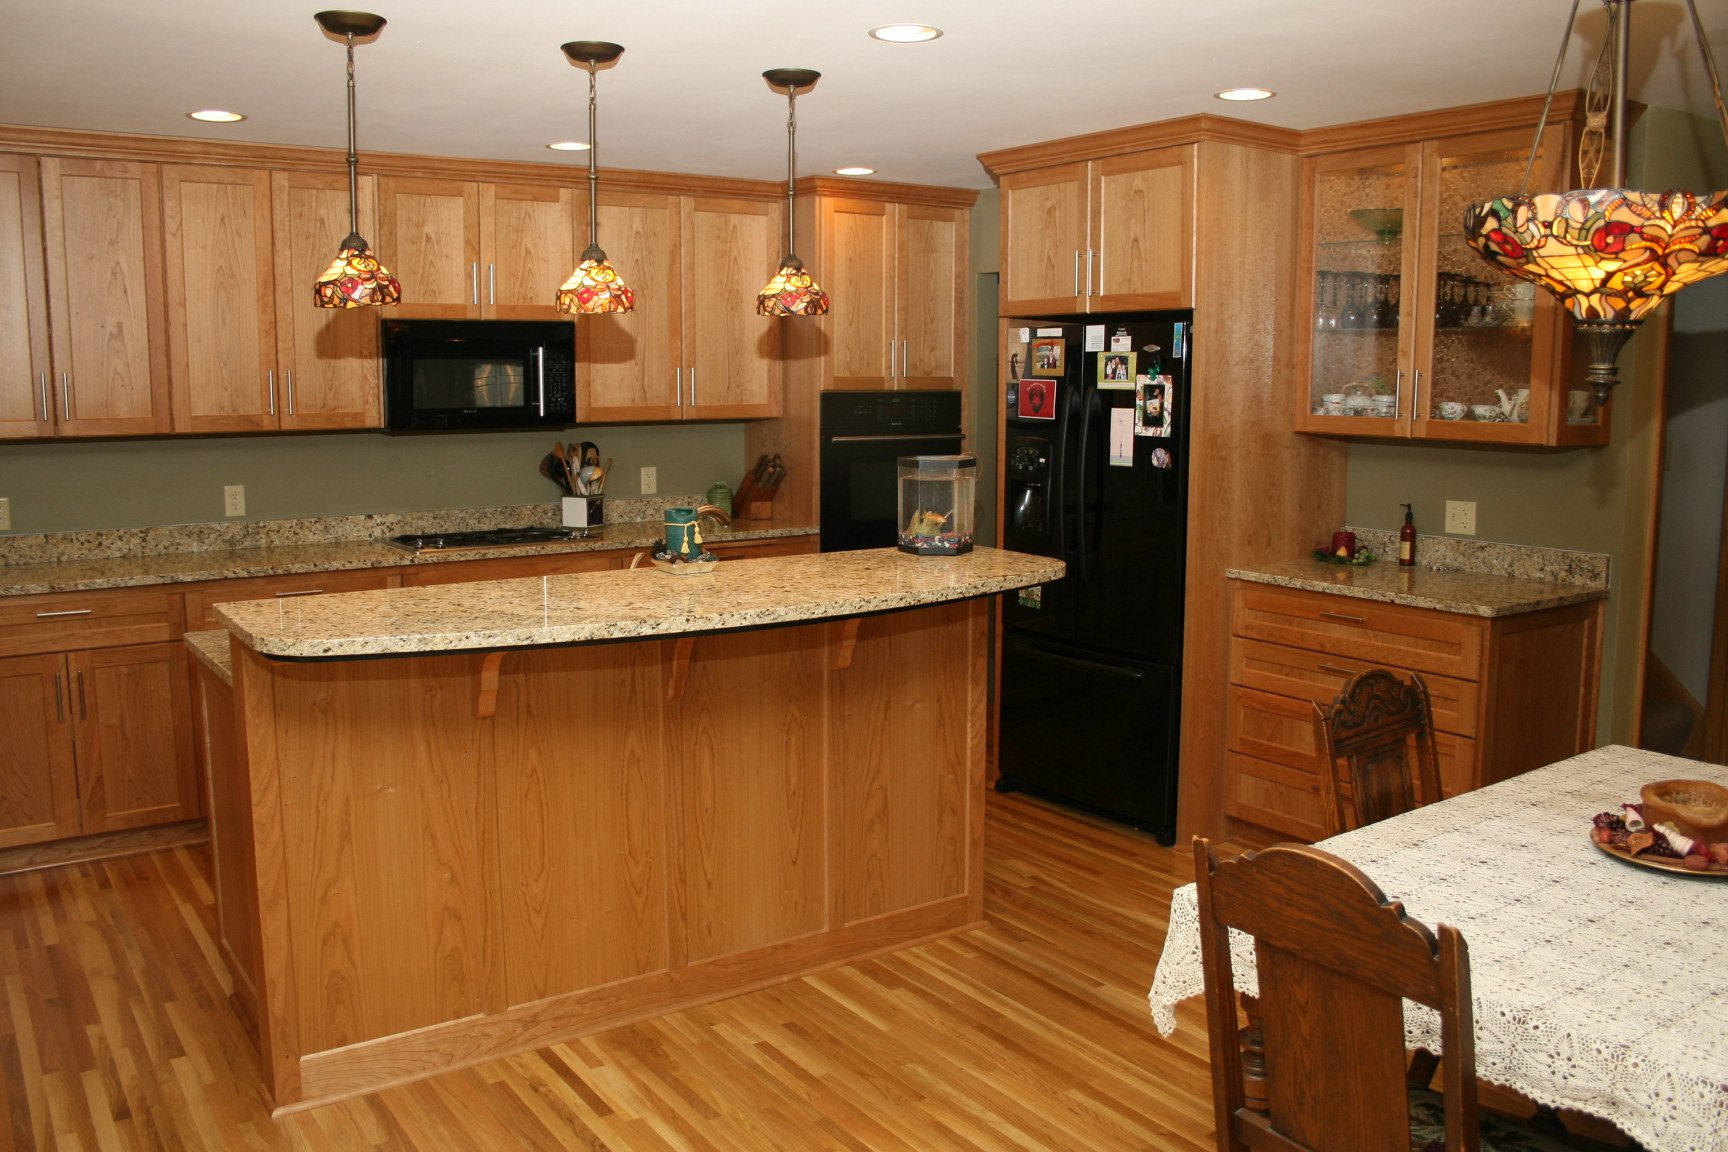 Beau CARE AND MAINTENANCE OF STONE COUNTERTOPS. Chicago_Granite_Countertops